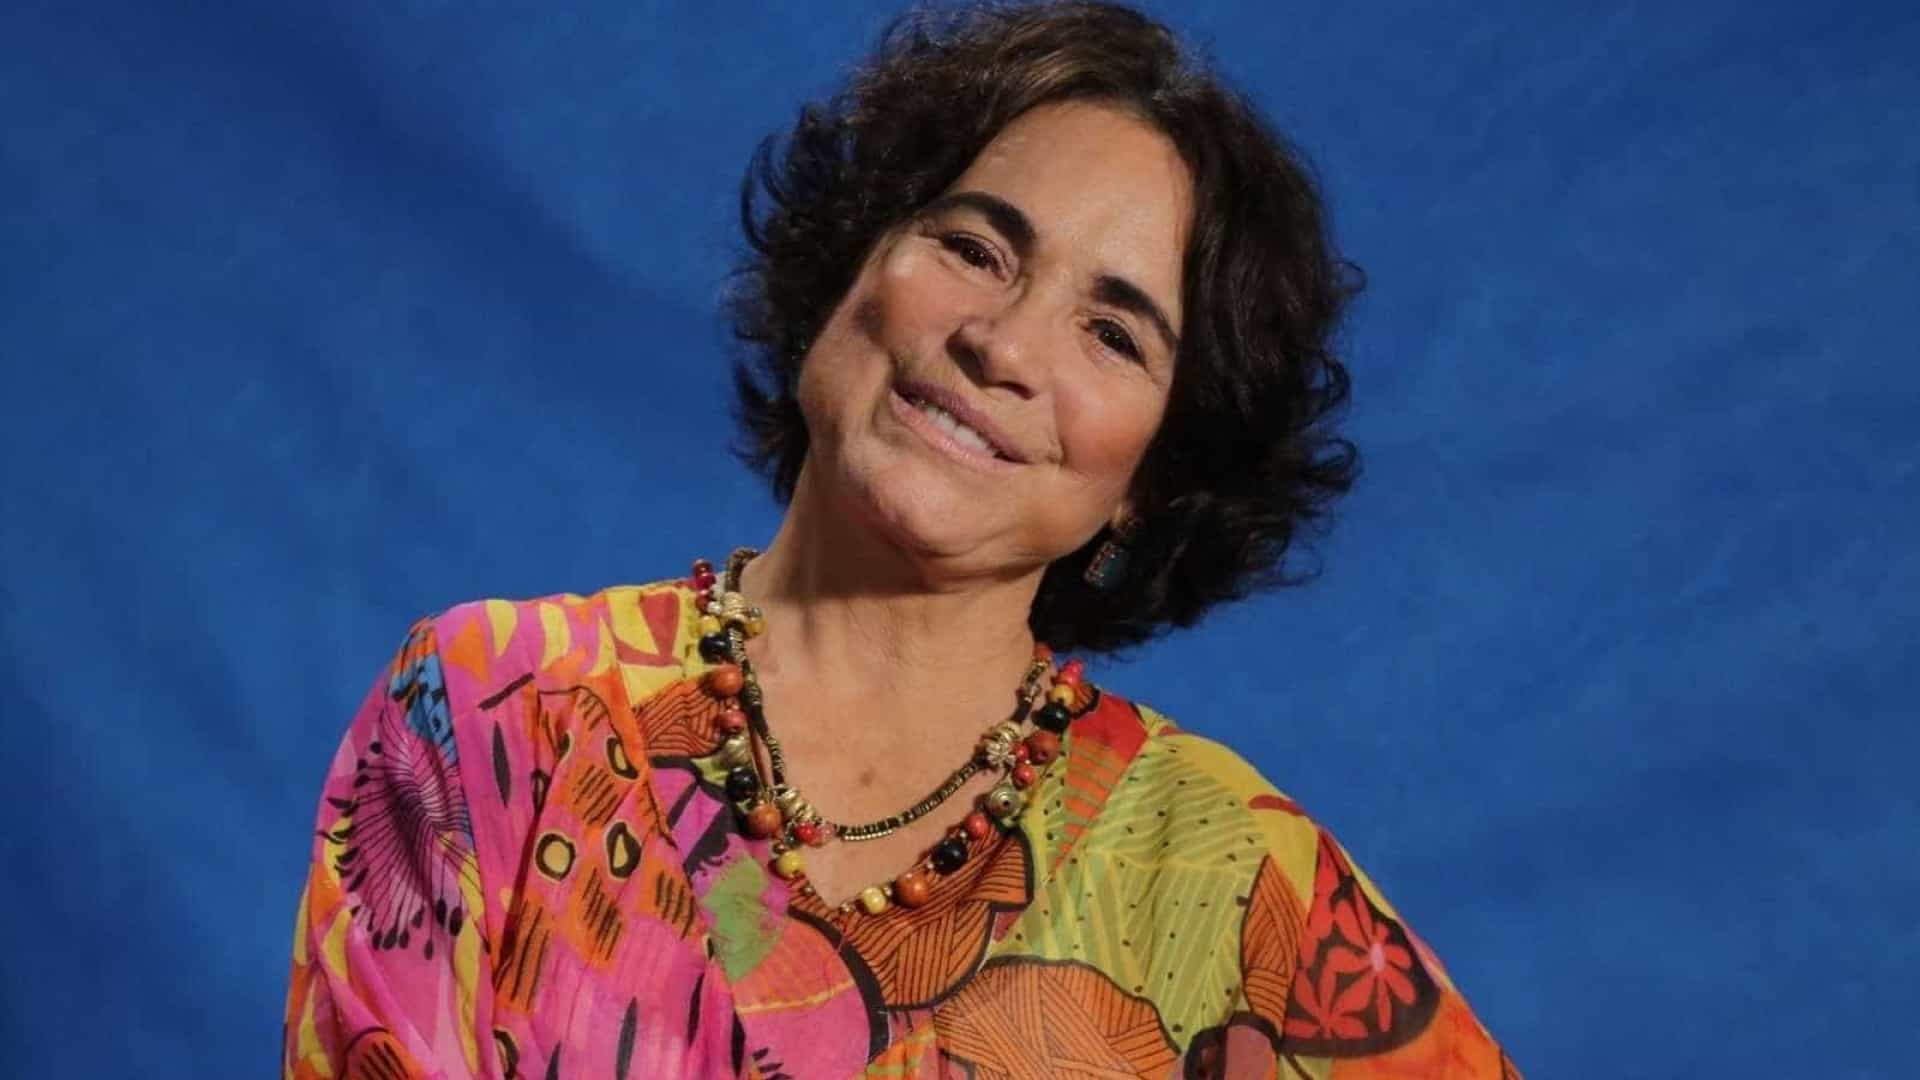 Regina Duarte faz post anti-PT e leva 'invertida' de Patrícia Pillar